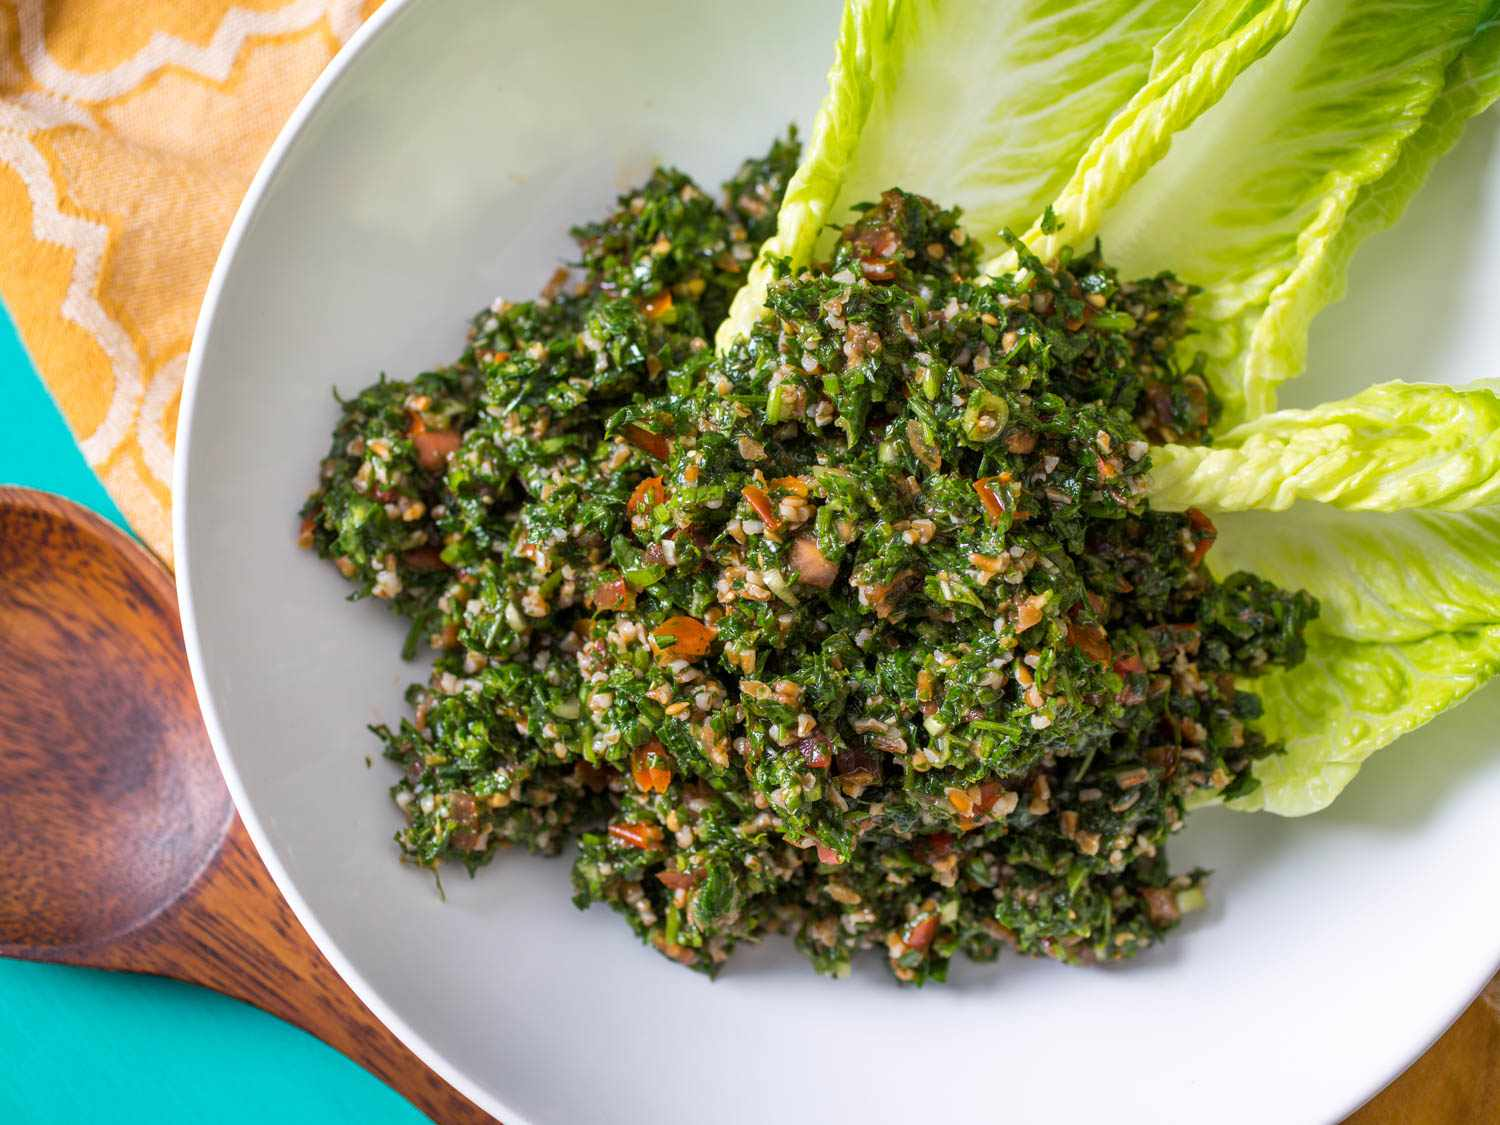 20170722-middle-eastern-recipes-roundup-04.jpg